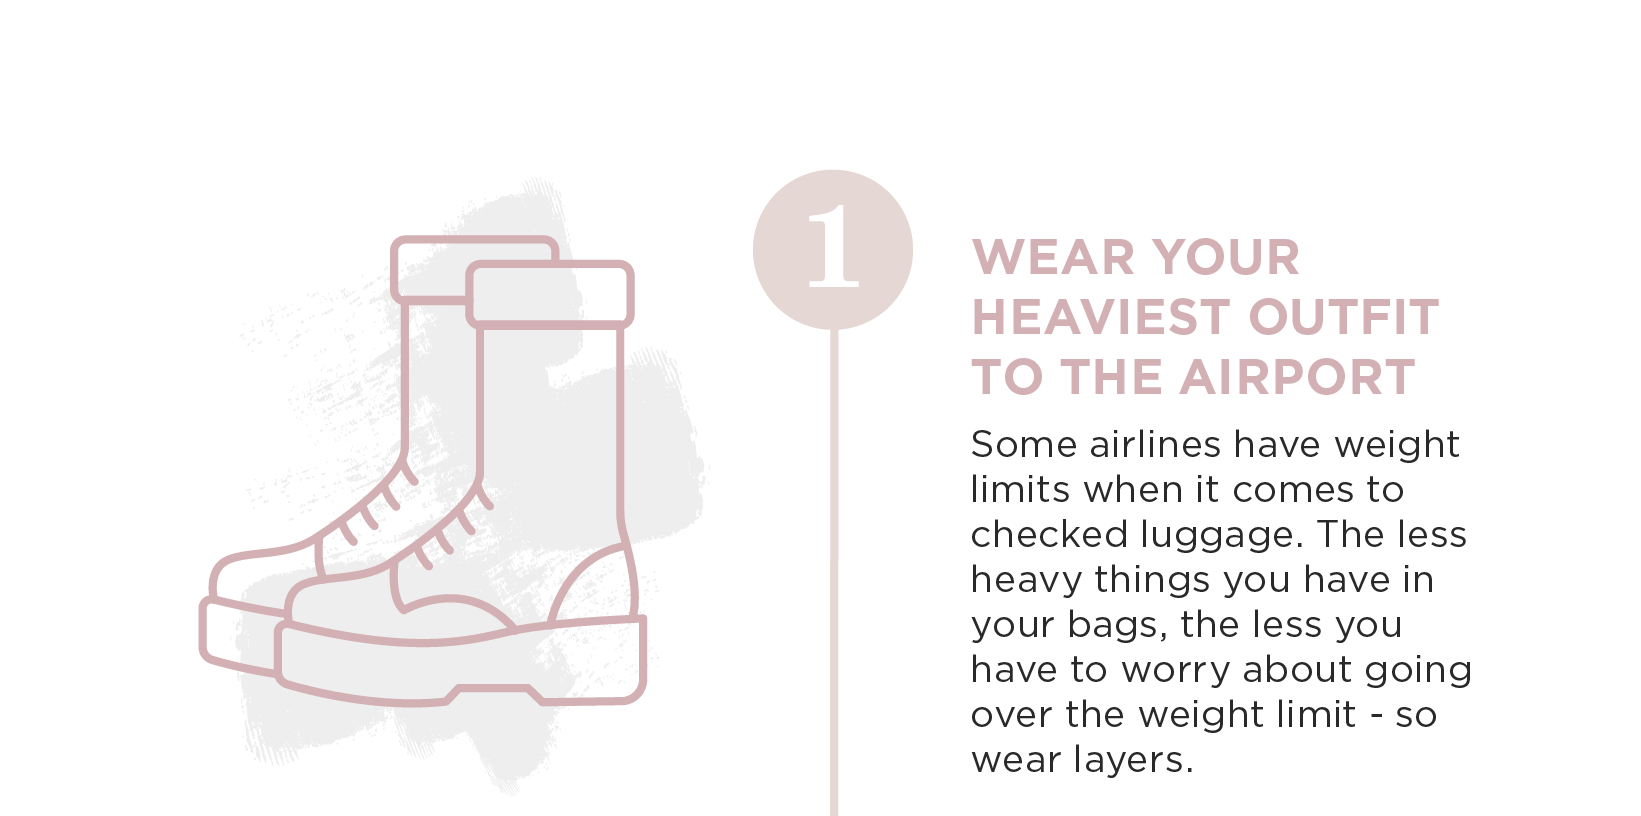 Wear Your Heaviest Outfit to the Airport. Some airlines have weight limits when it comes to checked luggage. the less heavy things your have in your bags, the less you have to worry about going over the weight limit. So wear layers.